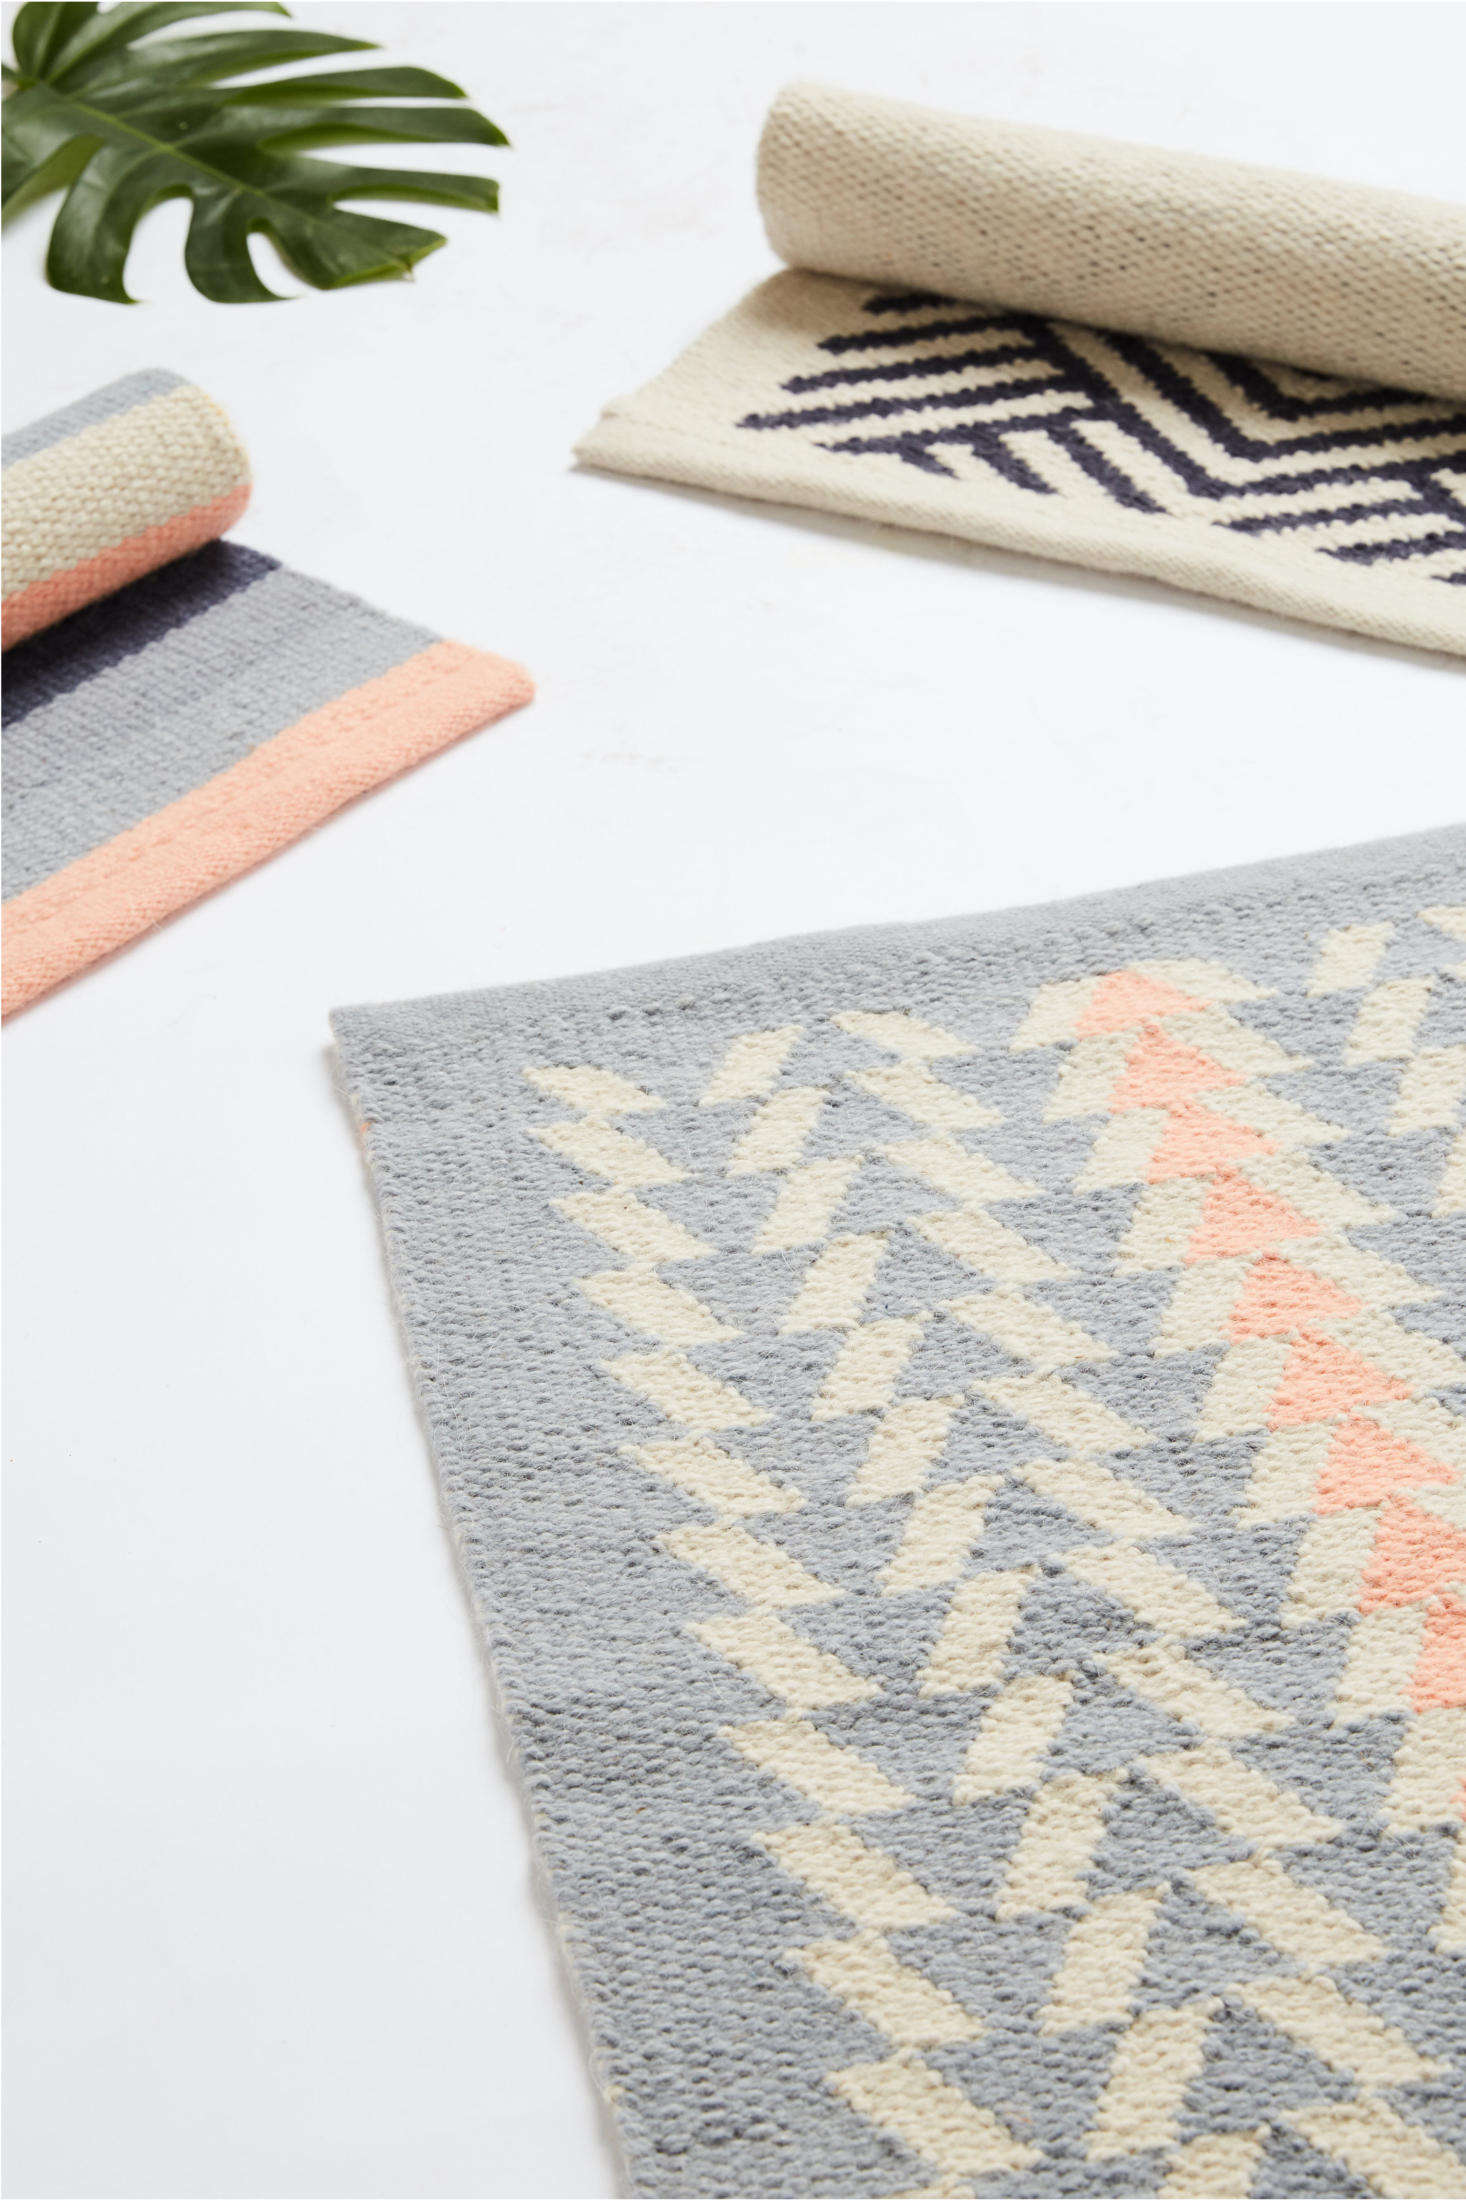 Ama Connection works closely with artisan communities to handcraft rugs using sustainable materials and ancient techniques.